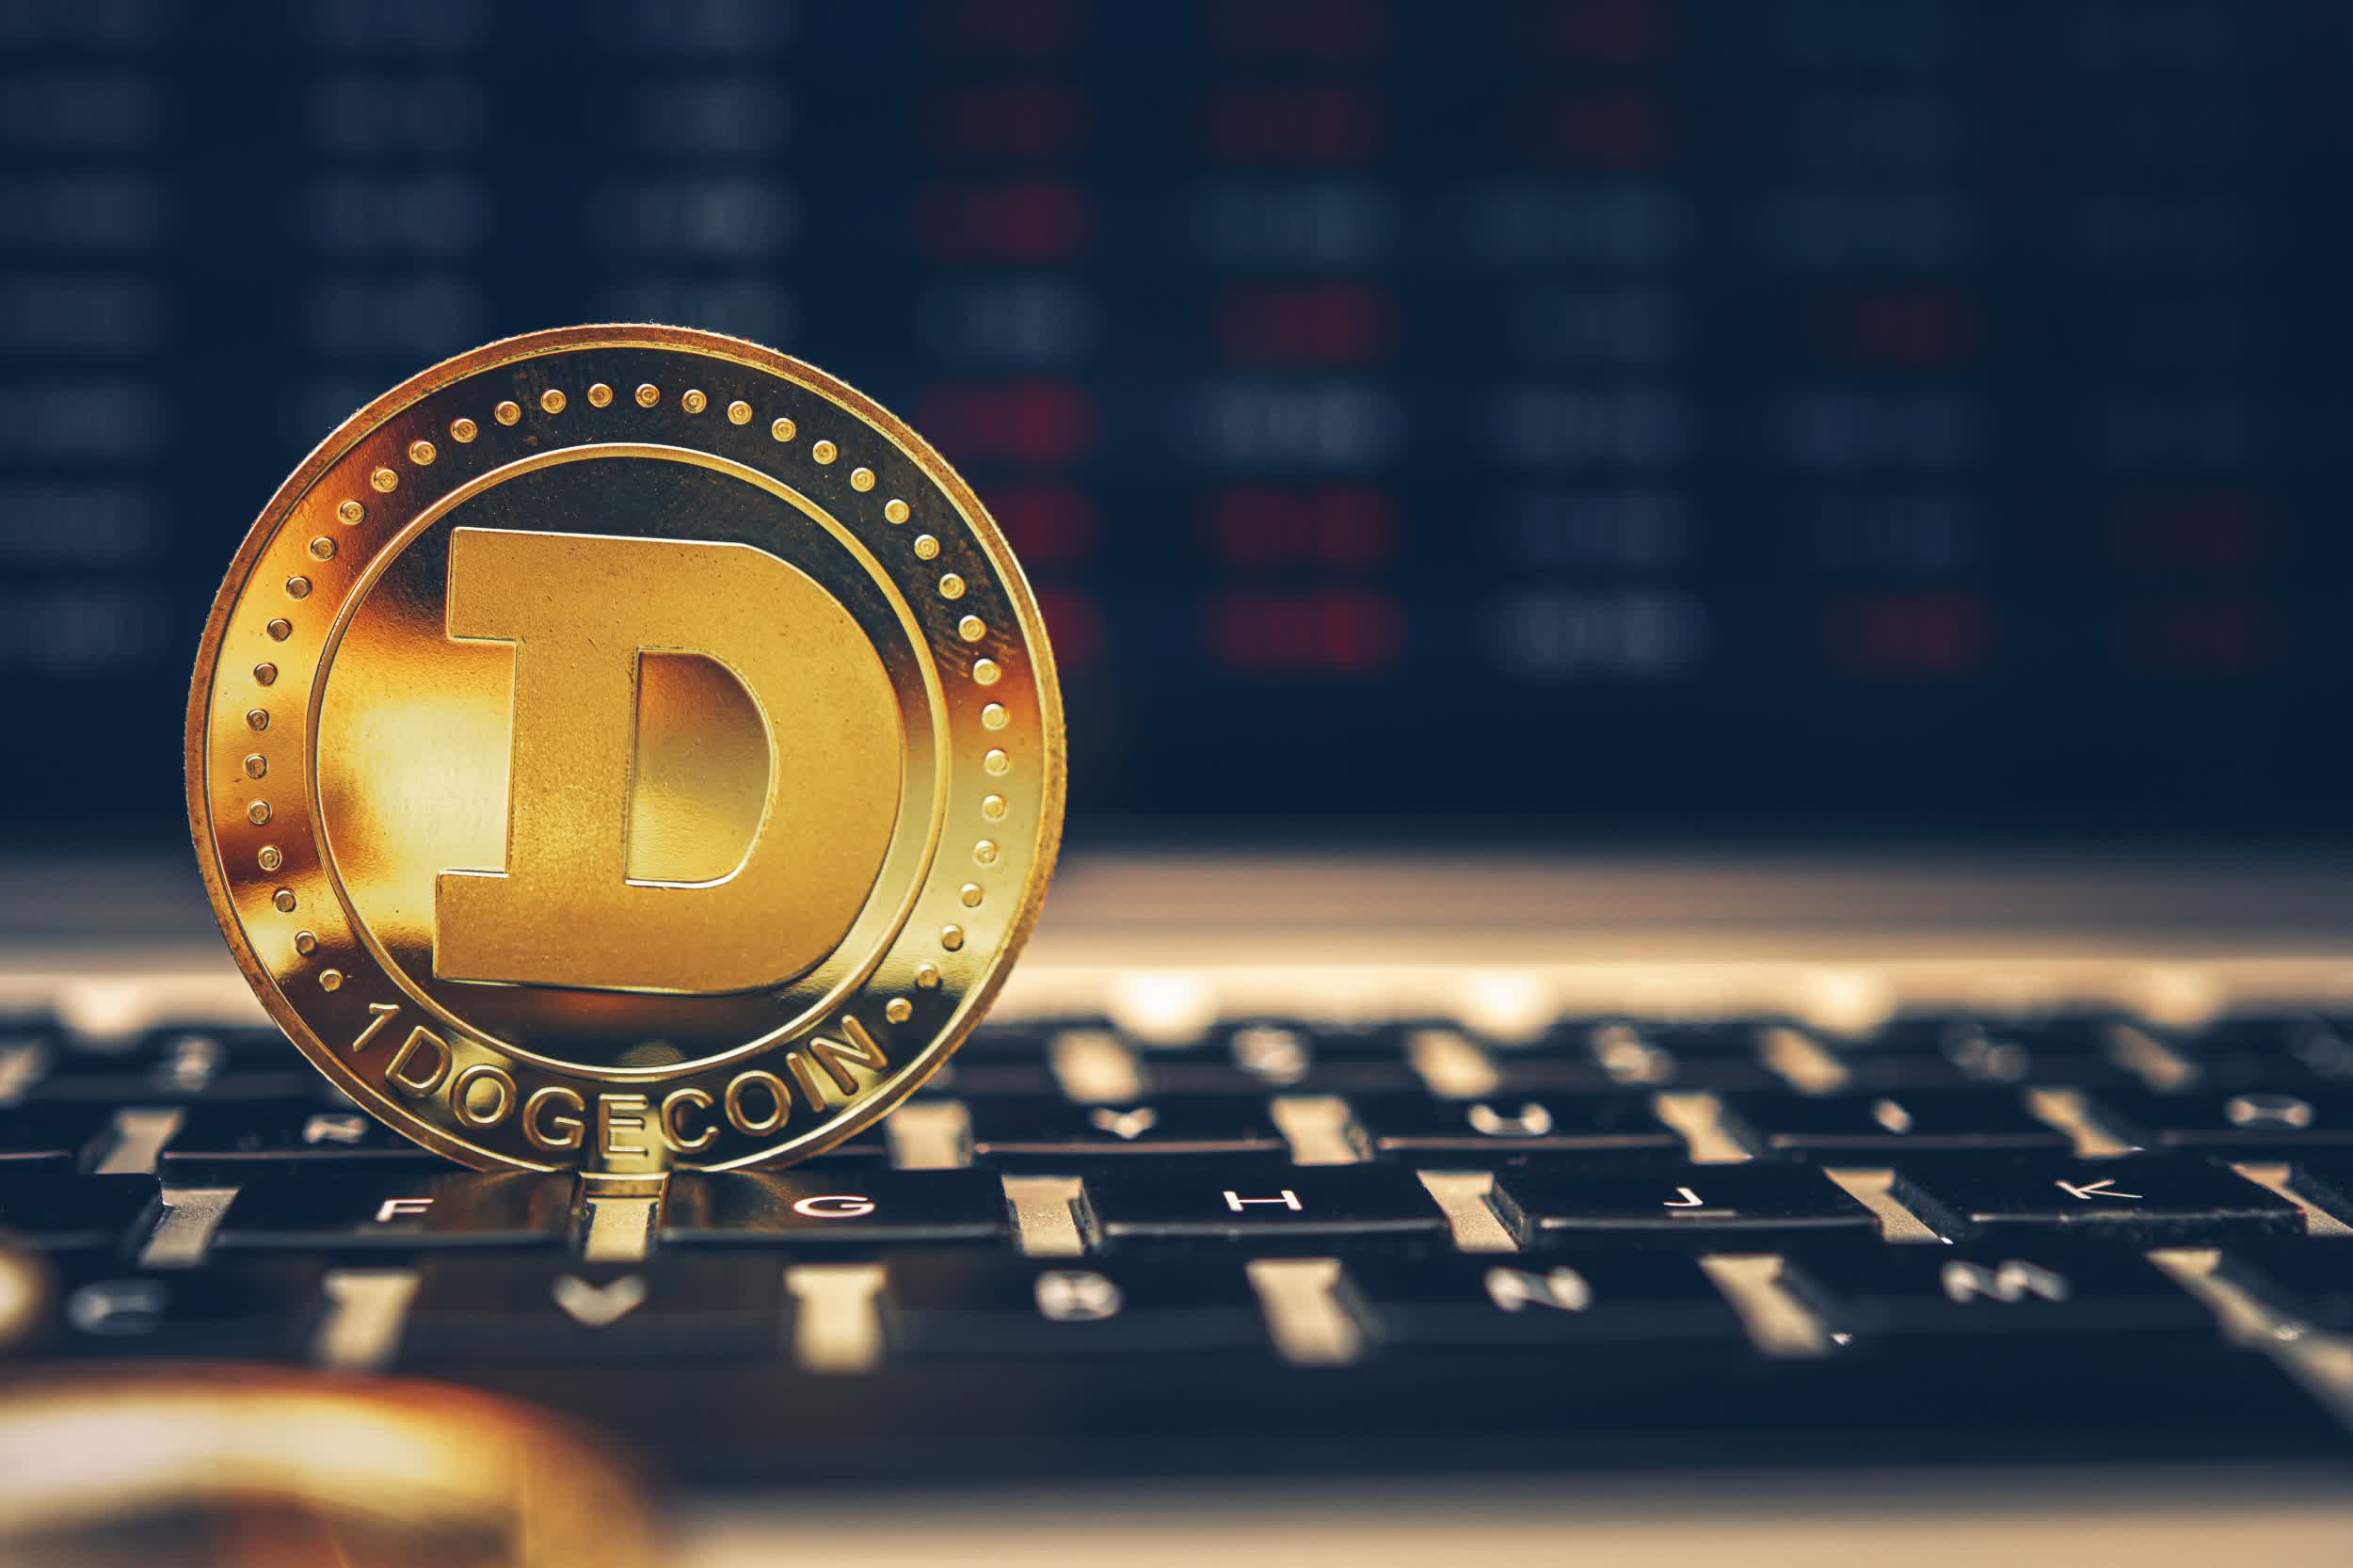 Dogecoin trading expected to open on Coinbase Pro starting June 3